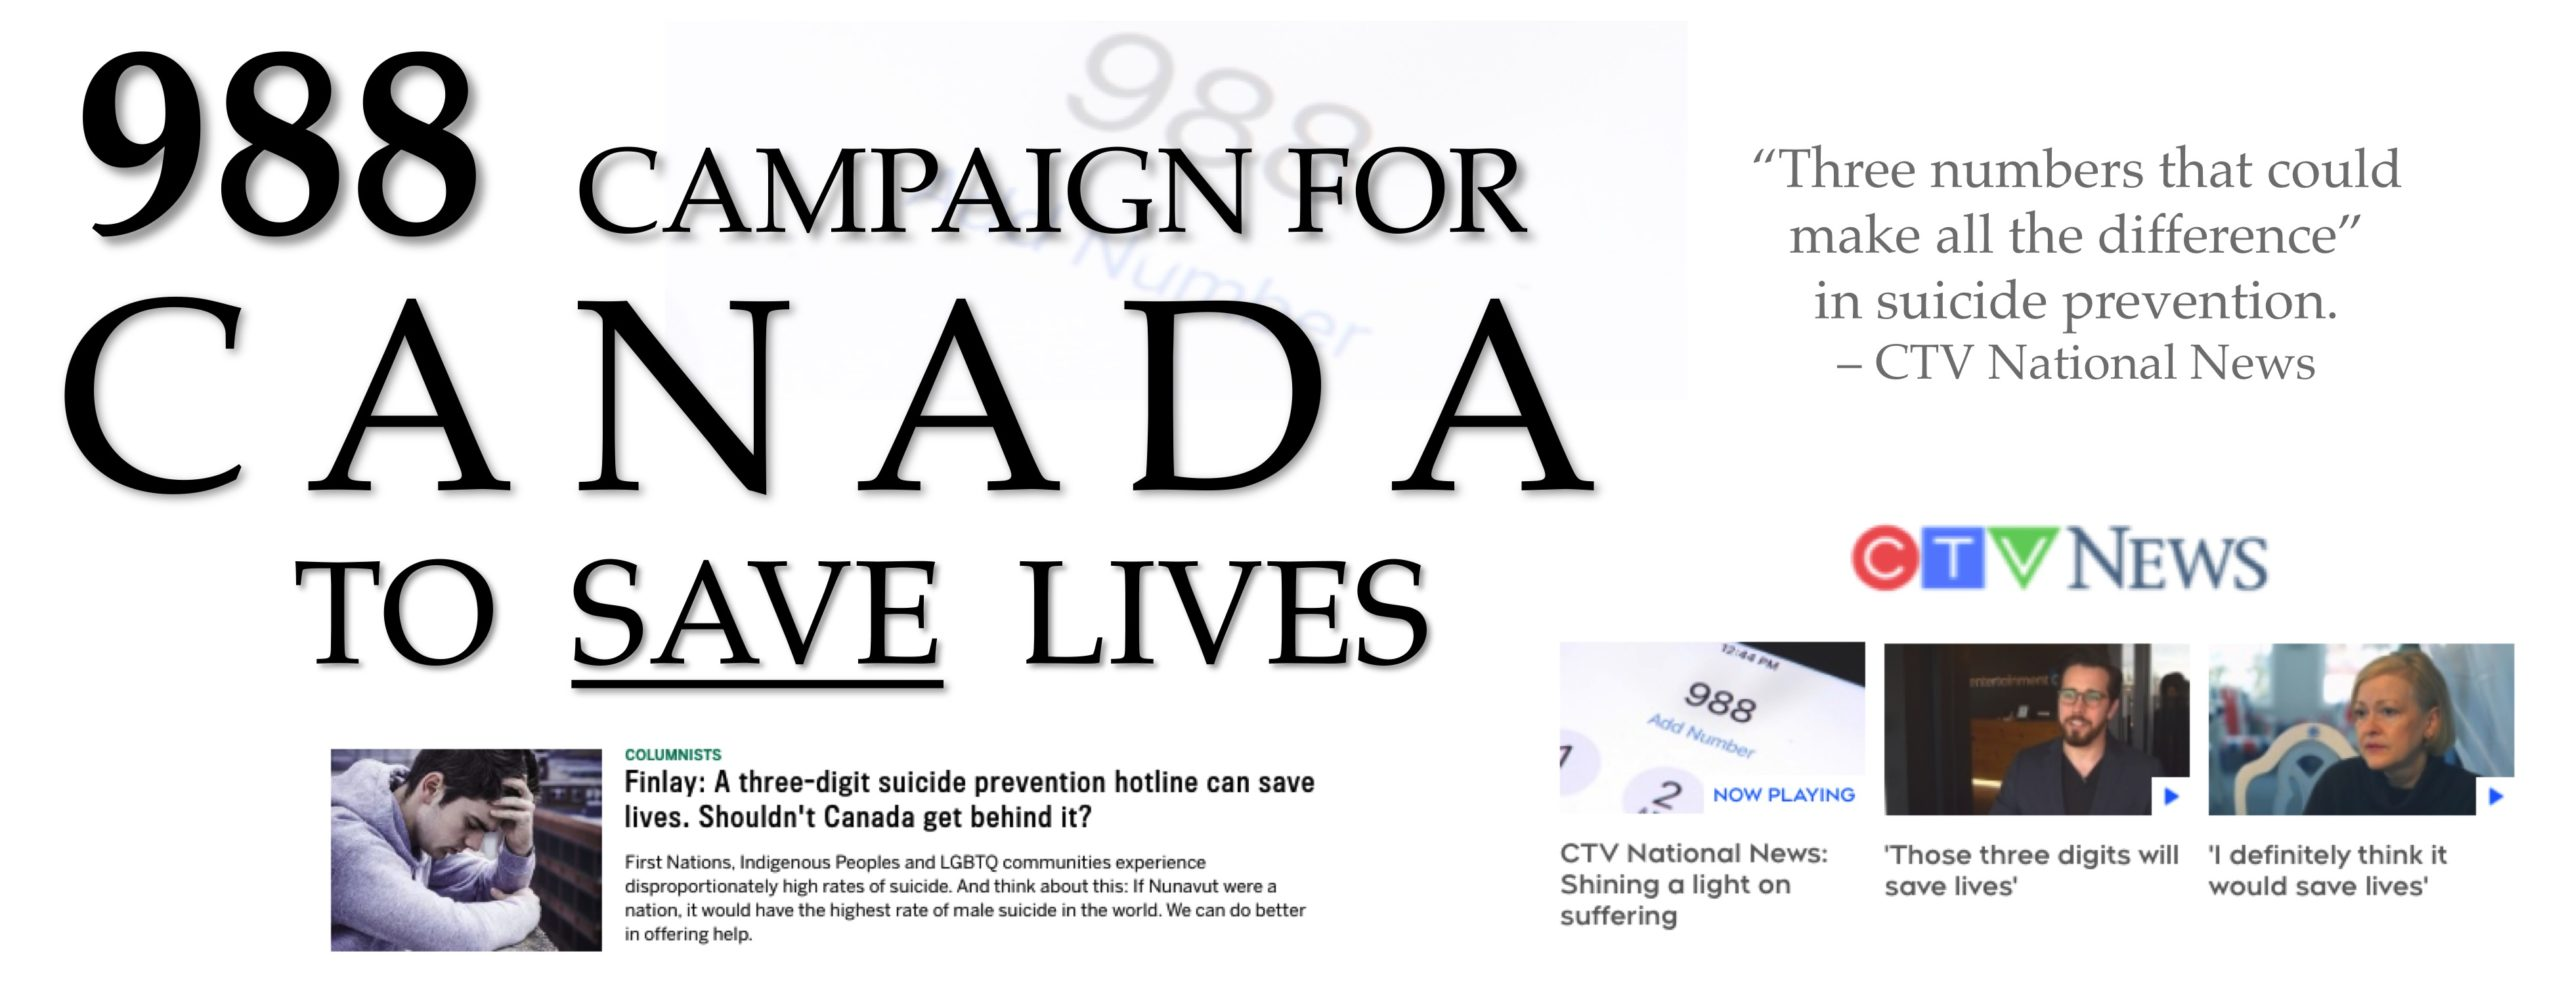 The 988 Campaign to Save Lives